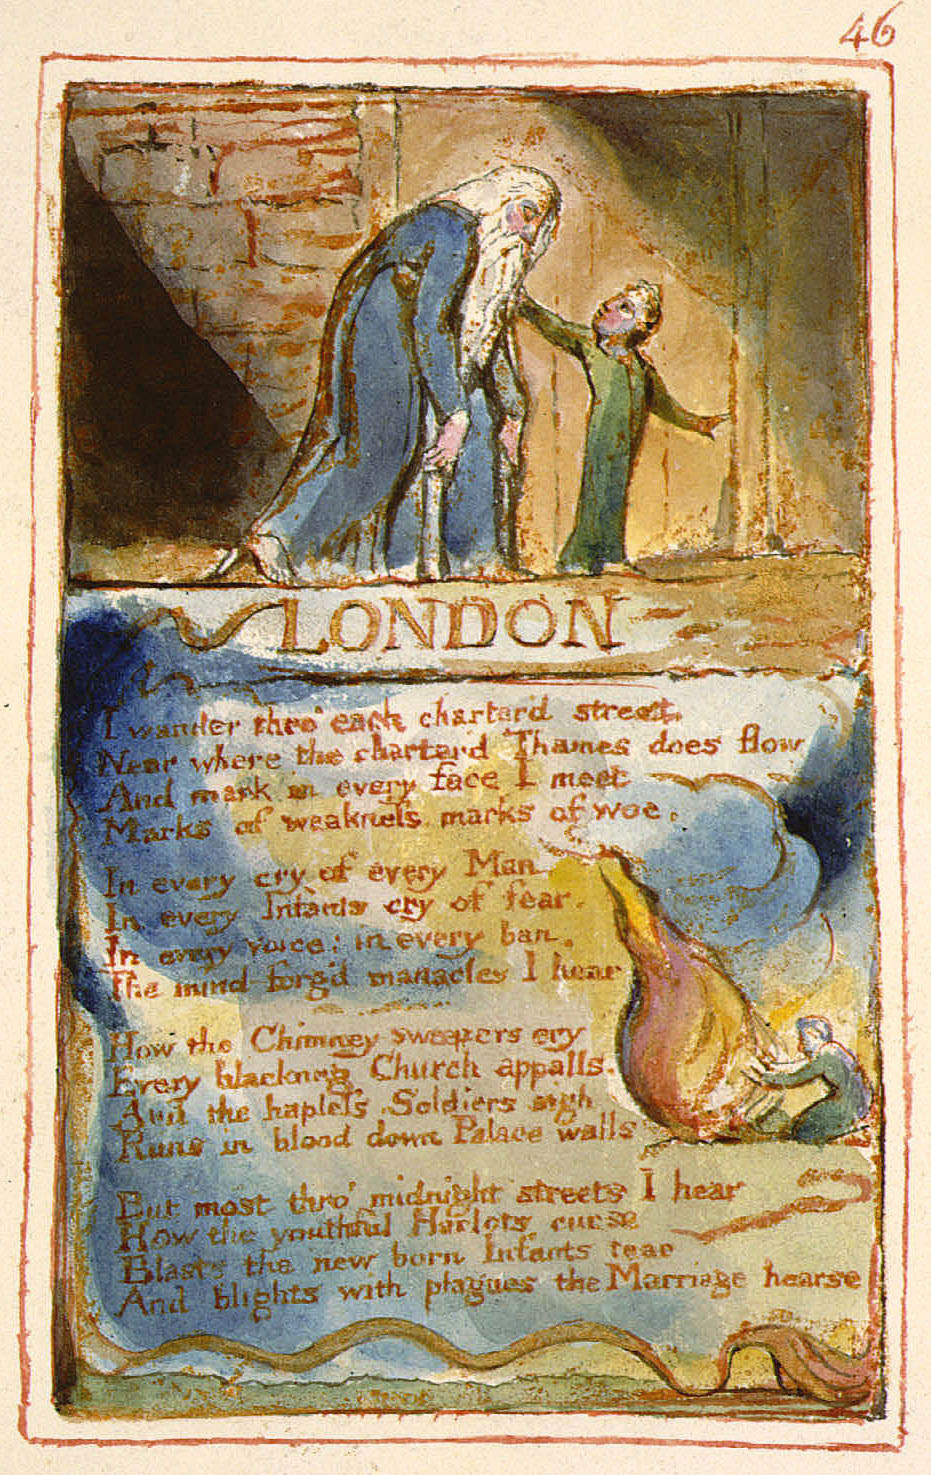 William Blake 'London'